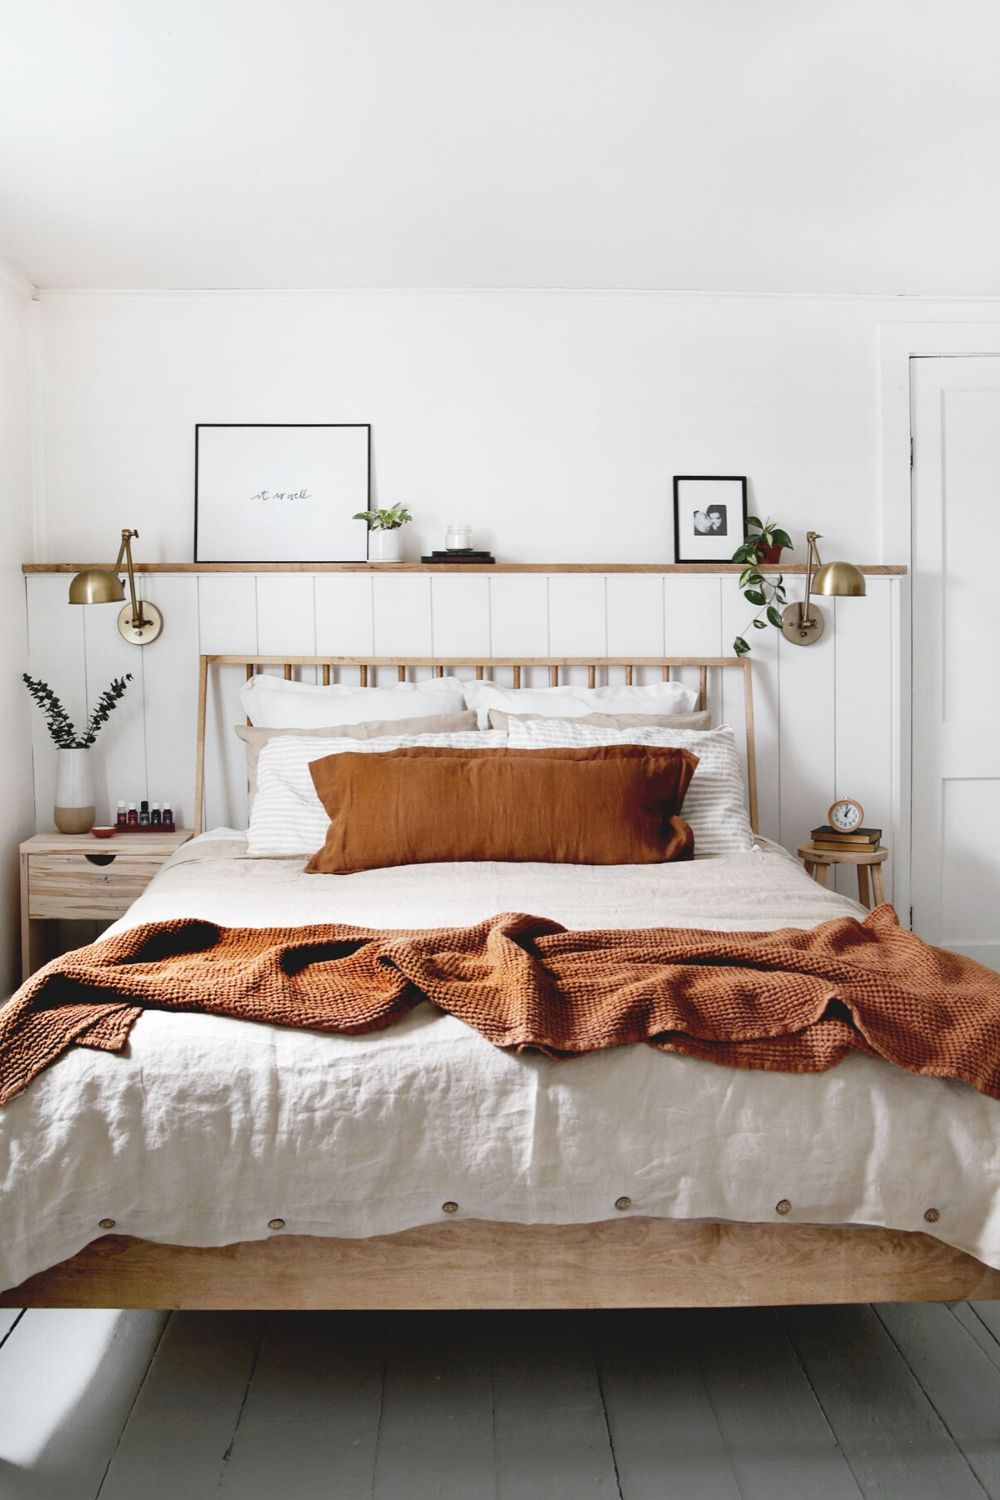 Mix and match earthy linen bedding to achieve this bedroom look styled by The Merrythought (IG: @themerrythought). Featuring linen shee